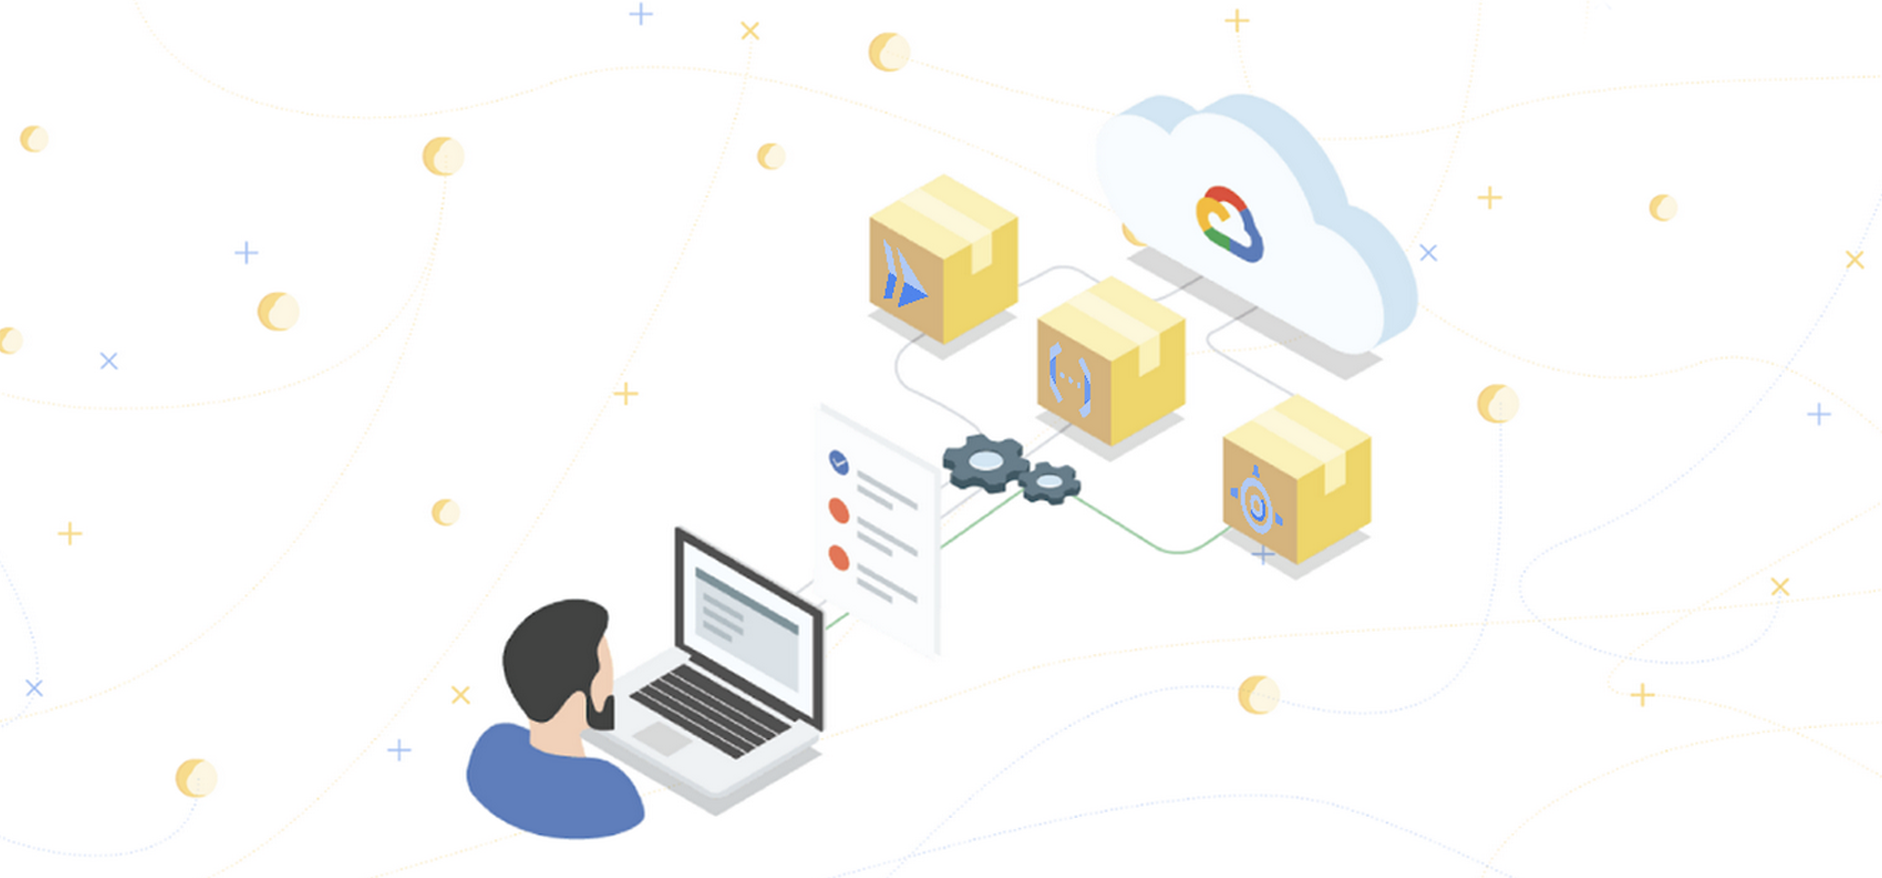 Banner image that shows the App Engine, Cloud Functions, and Cloud Run logos